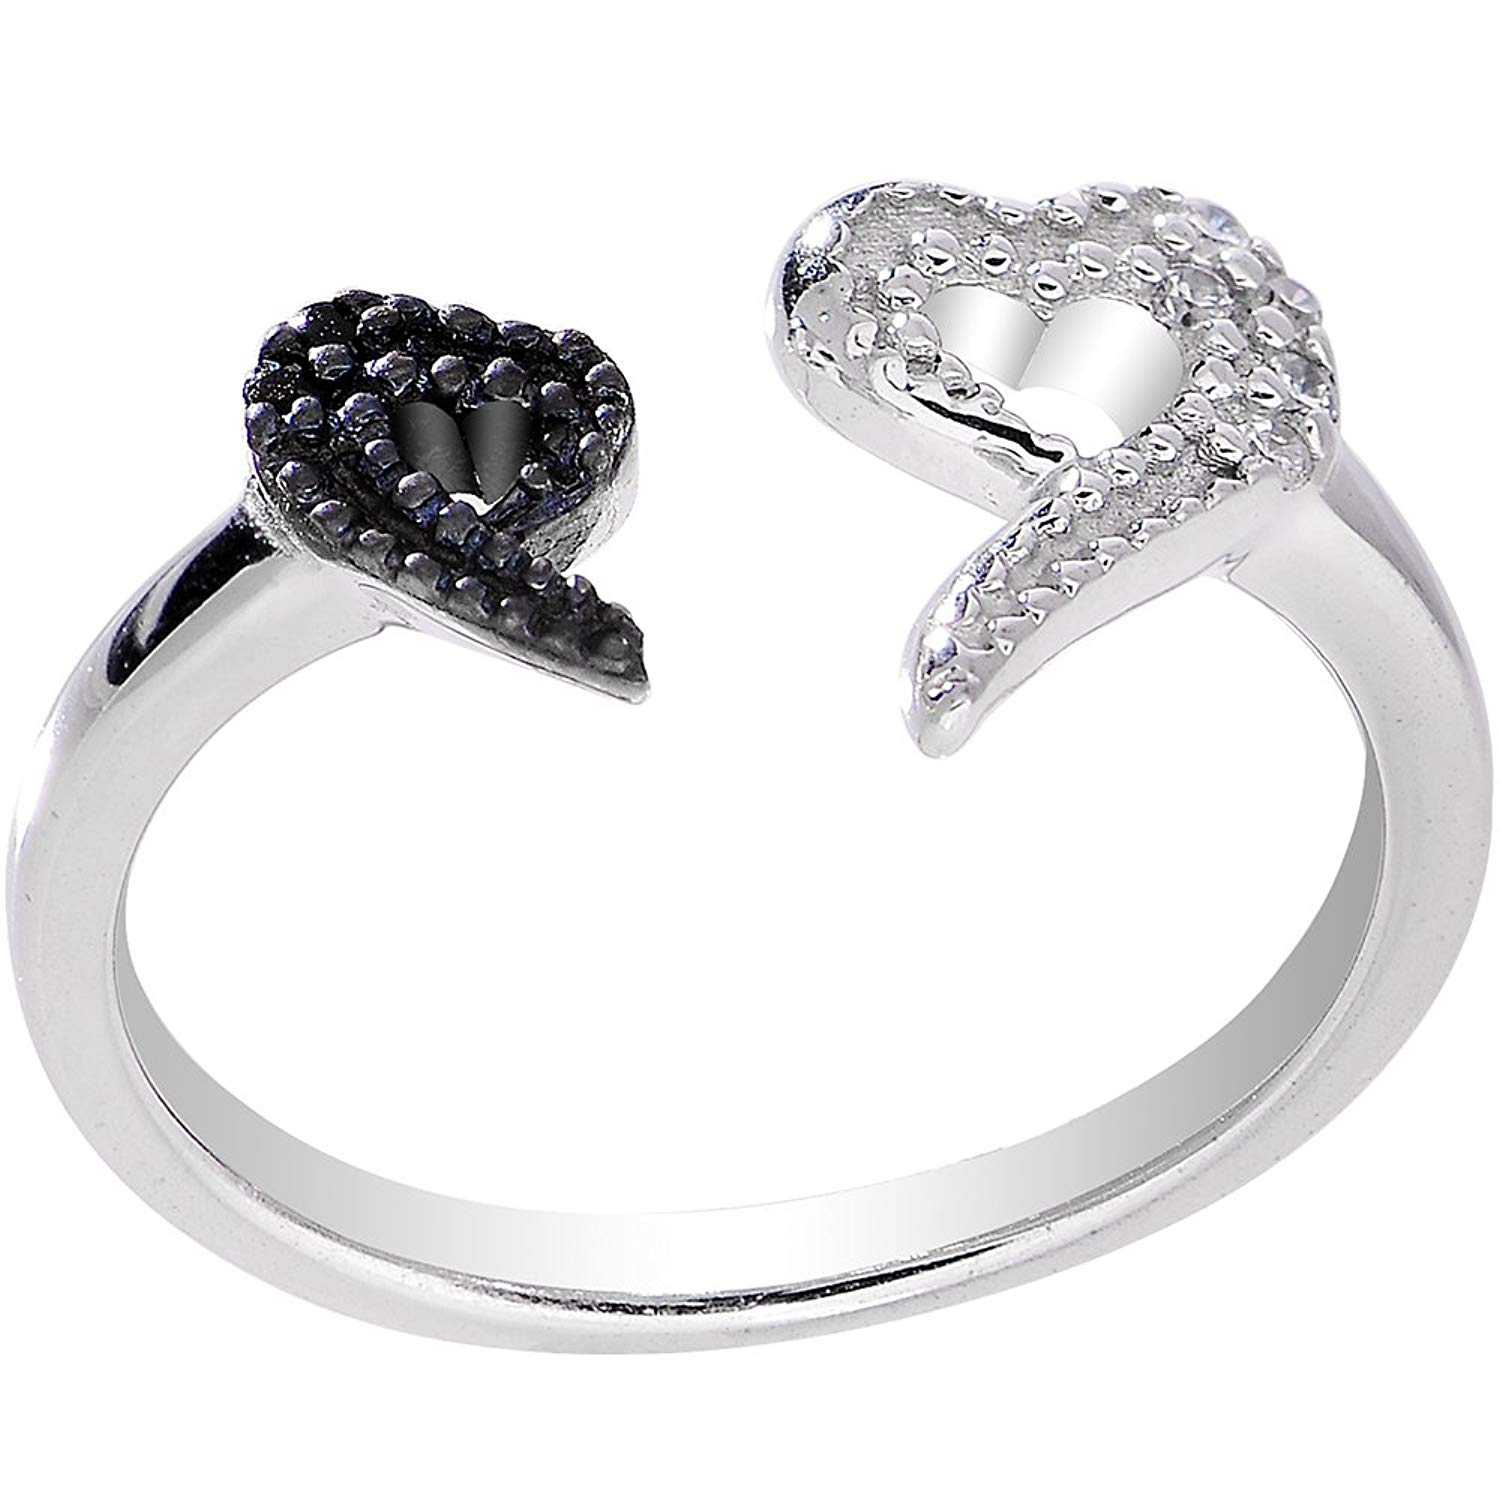 Body Candy 925 Sterling Silver Clear Black Dual Snake Heart Toe Ring